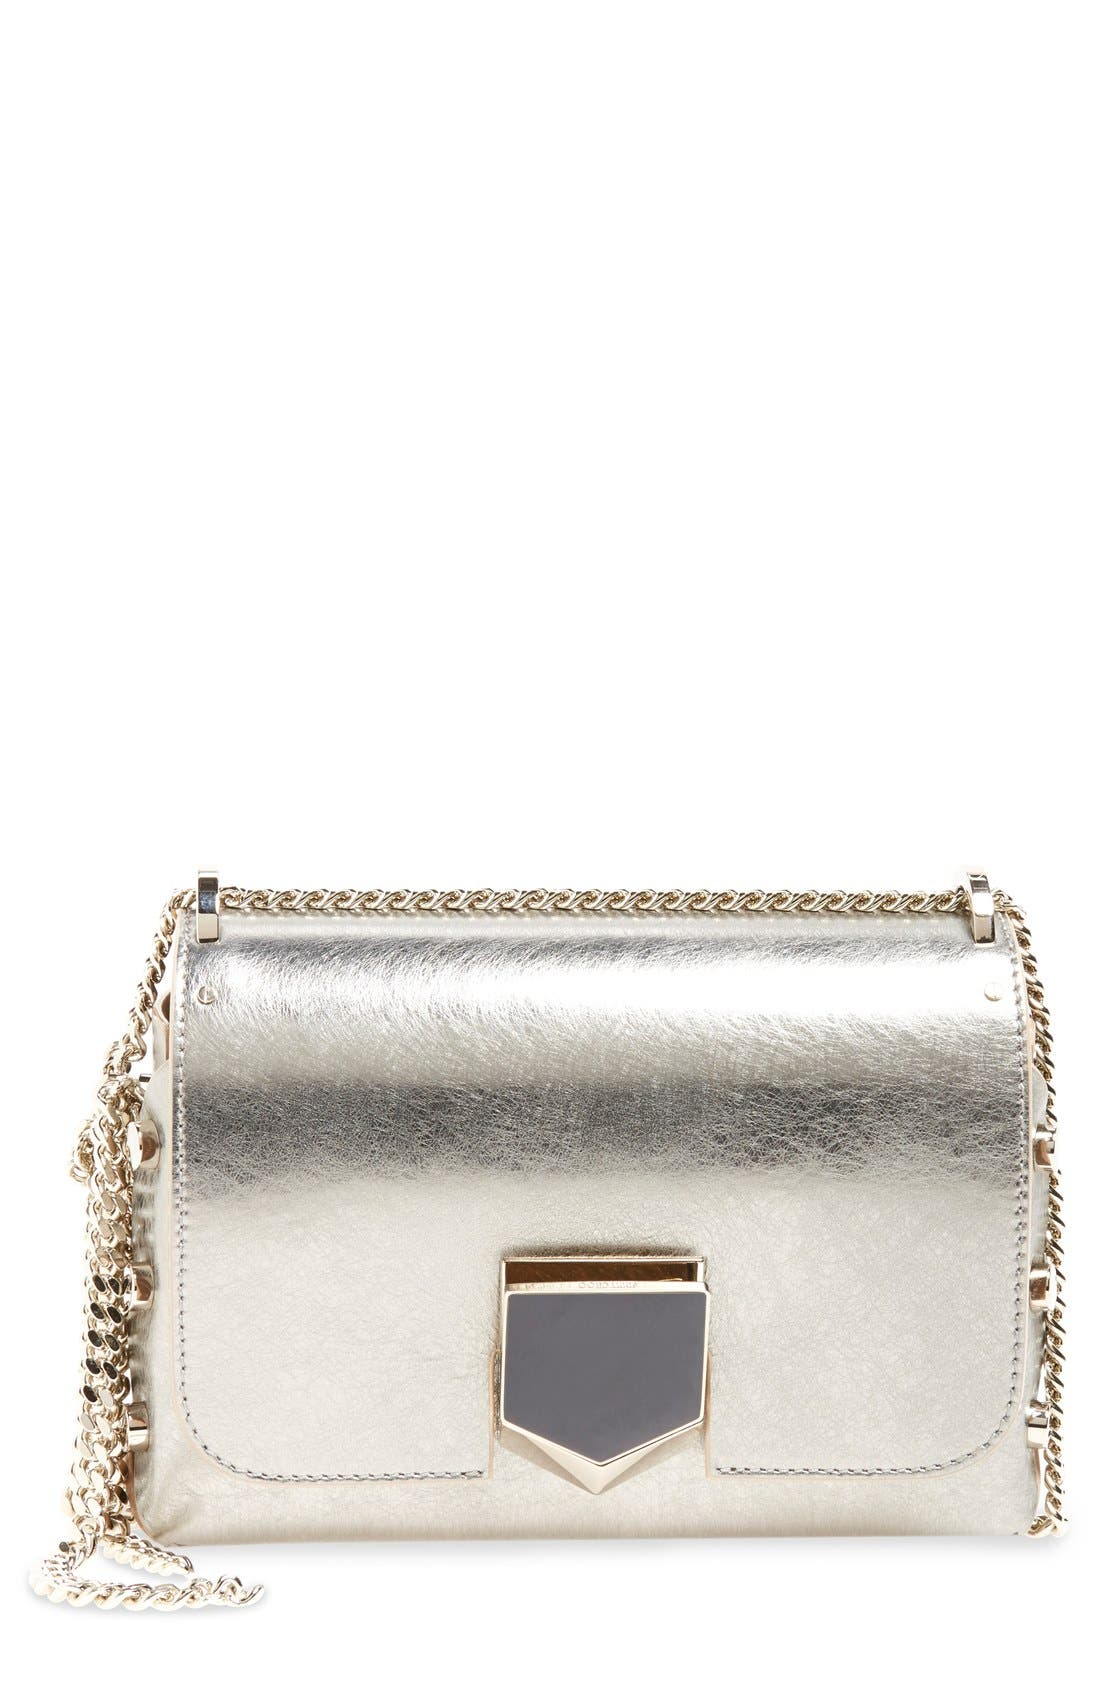 'Lockett Petite' Metallic Leather Shoulder Bag,                         Main,                         color, Vintage Silver